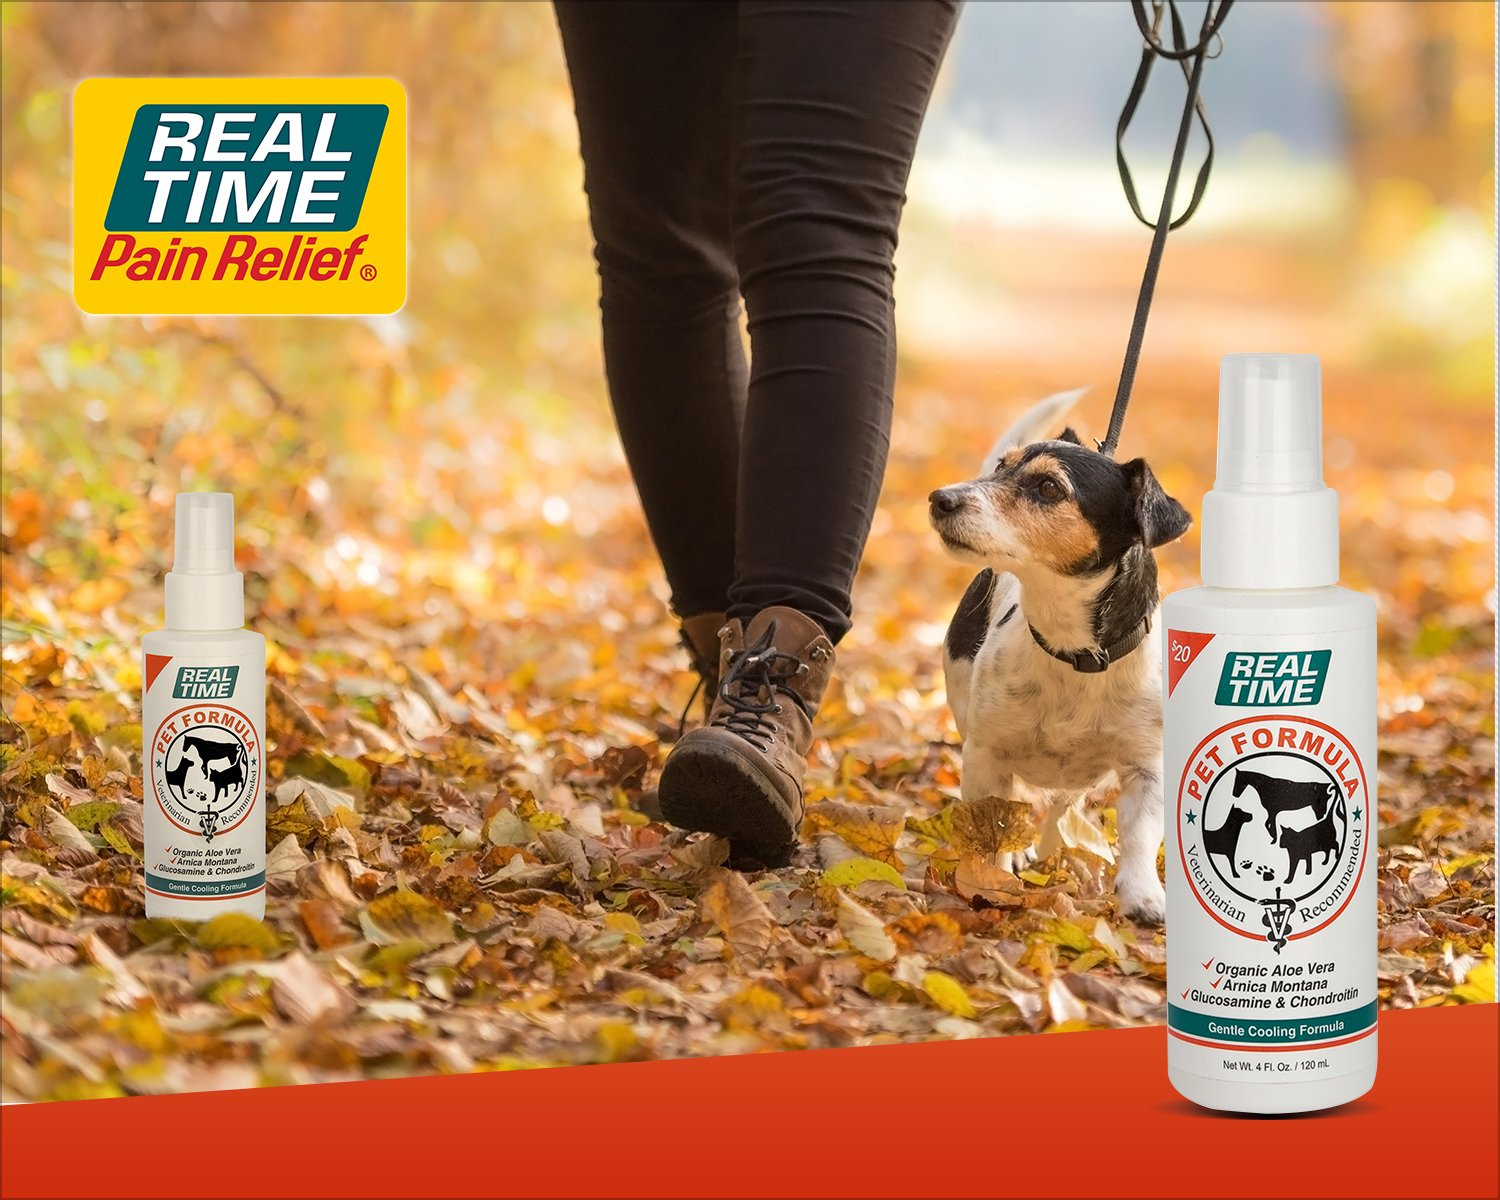 Real Time Pain Relief Pet Formula, 4 Ounce Spray Bottle by Real Time Pain Relief